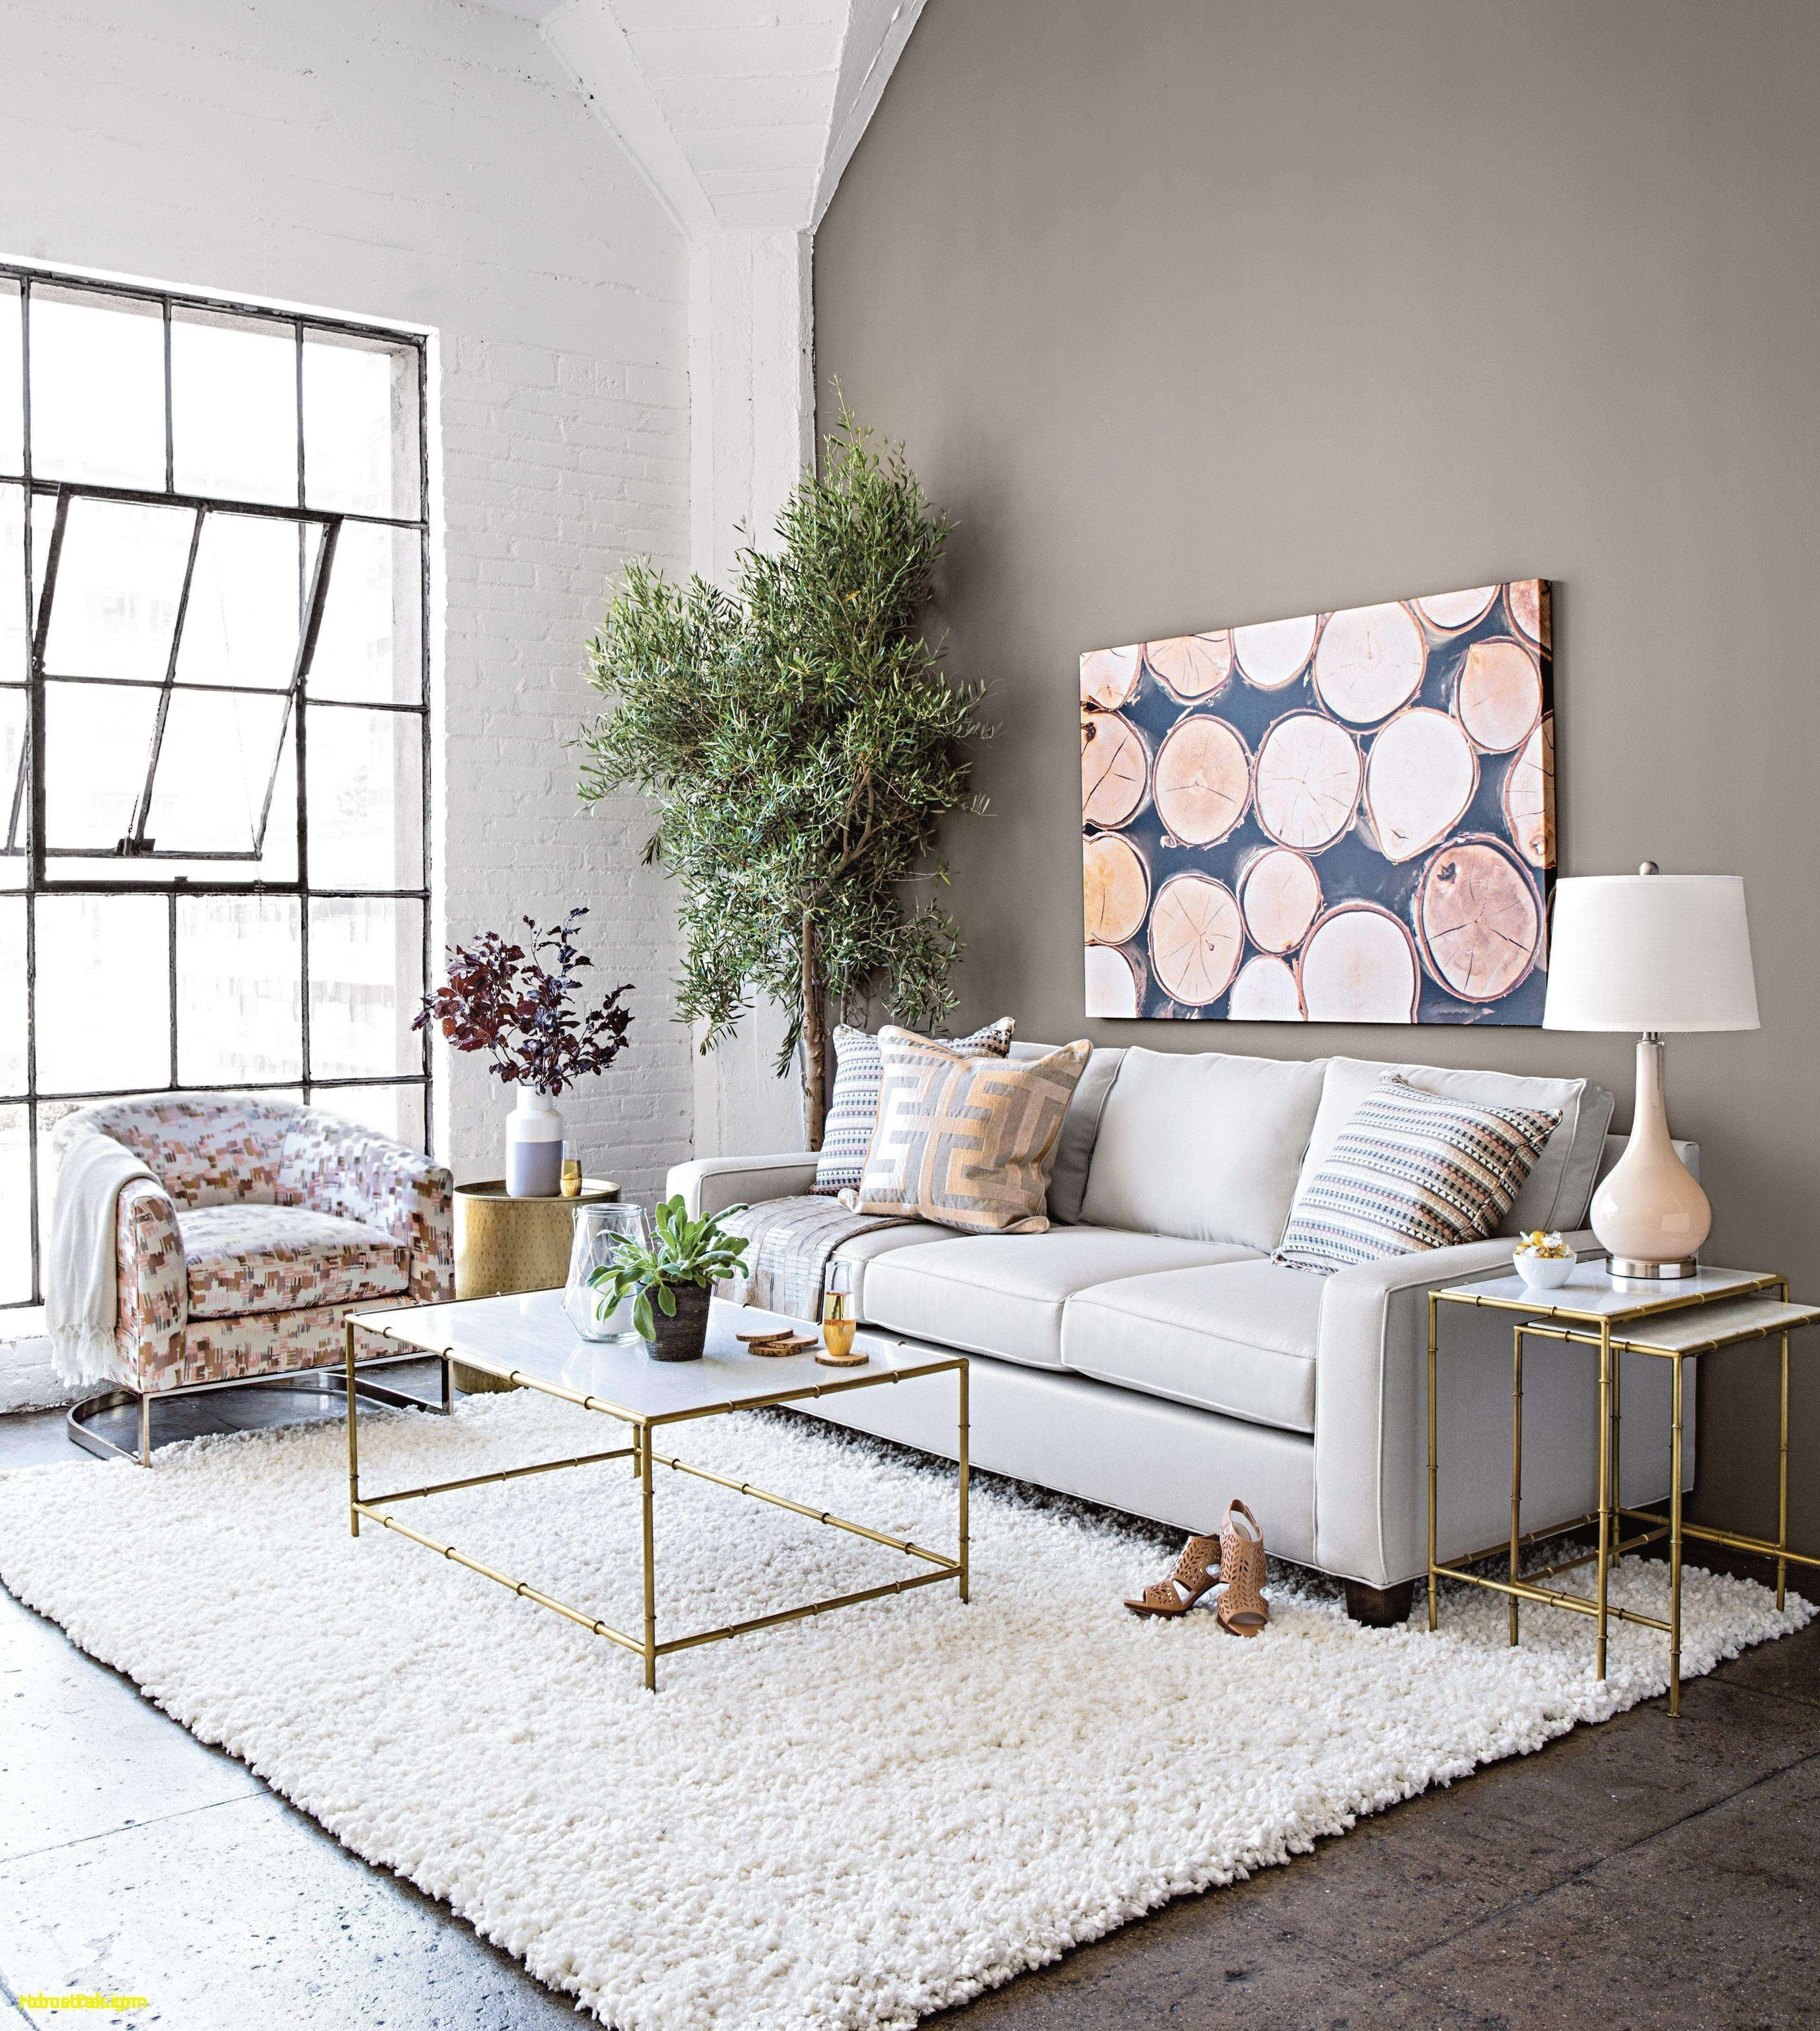 White Wall Decor For Bedroom Lovely Small Living Room Decorating Ideas Pinterest Best Selle In 2020 Living Room Furnishings Wall Decor Living Room Living Room Pictures